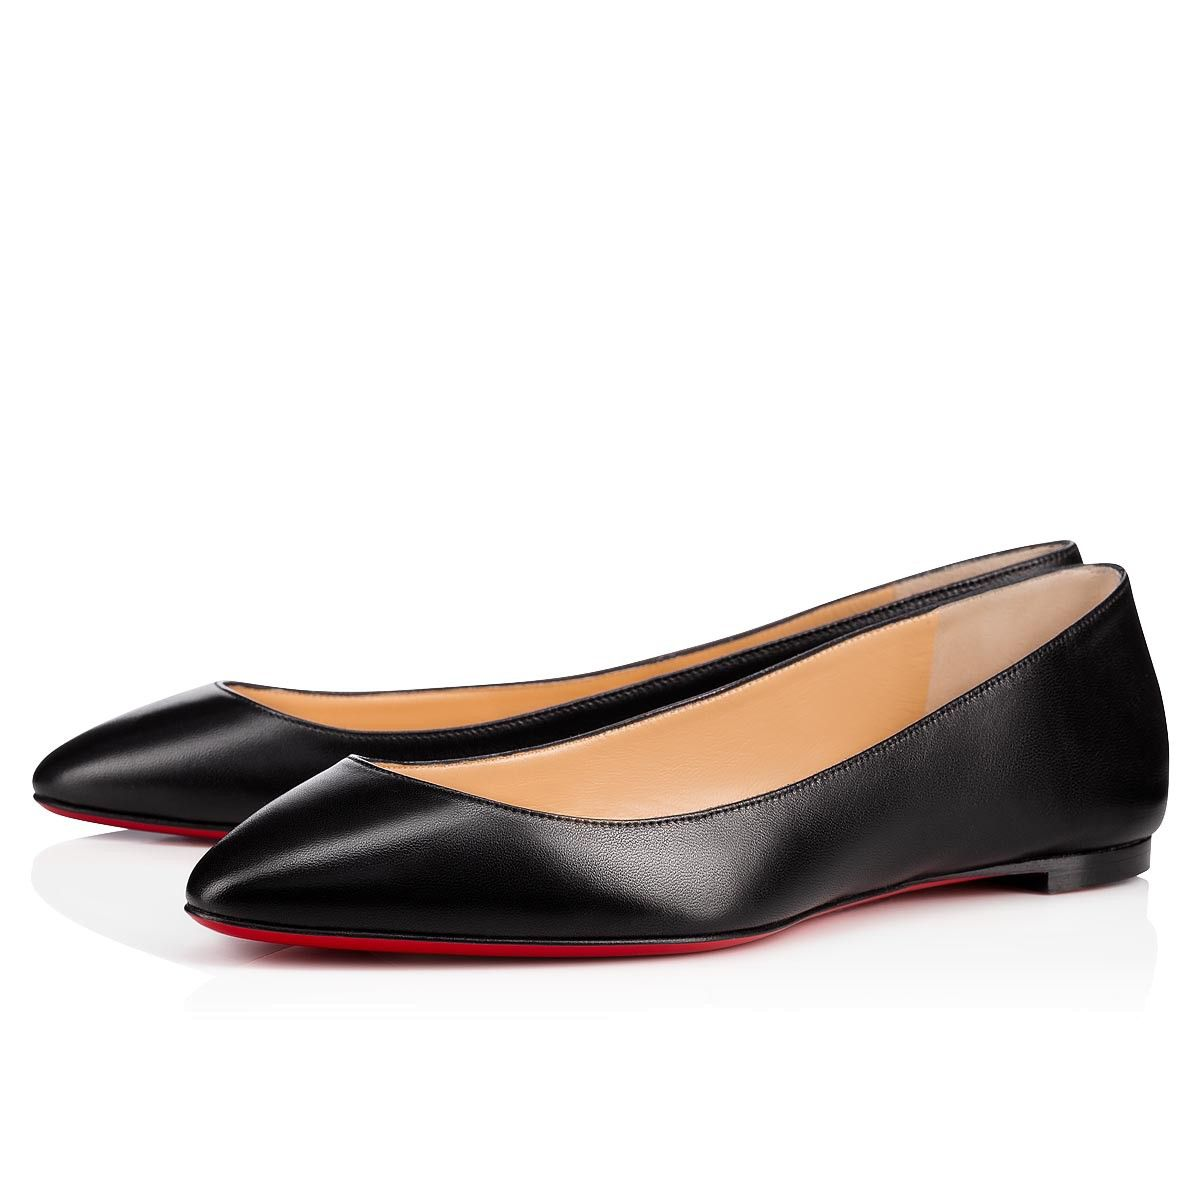 7bfe723934f Shoes - Eloise Flat - Christian Louboutin